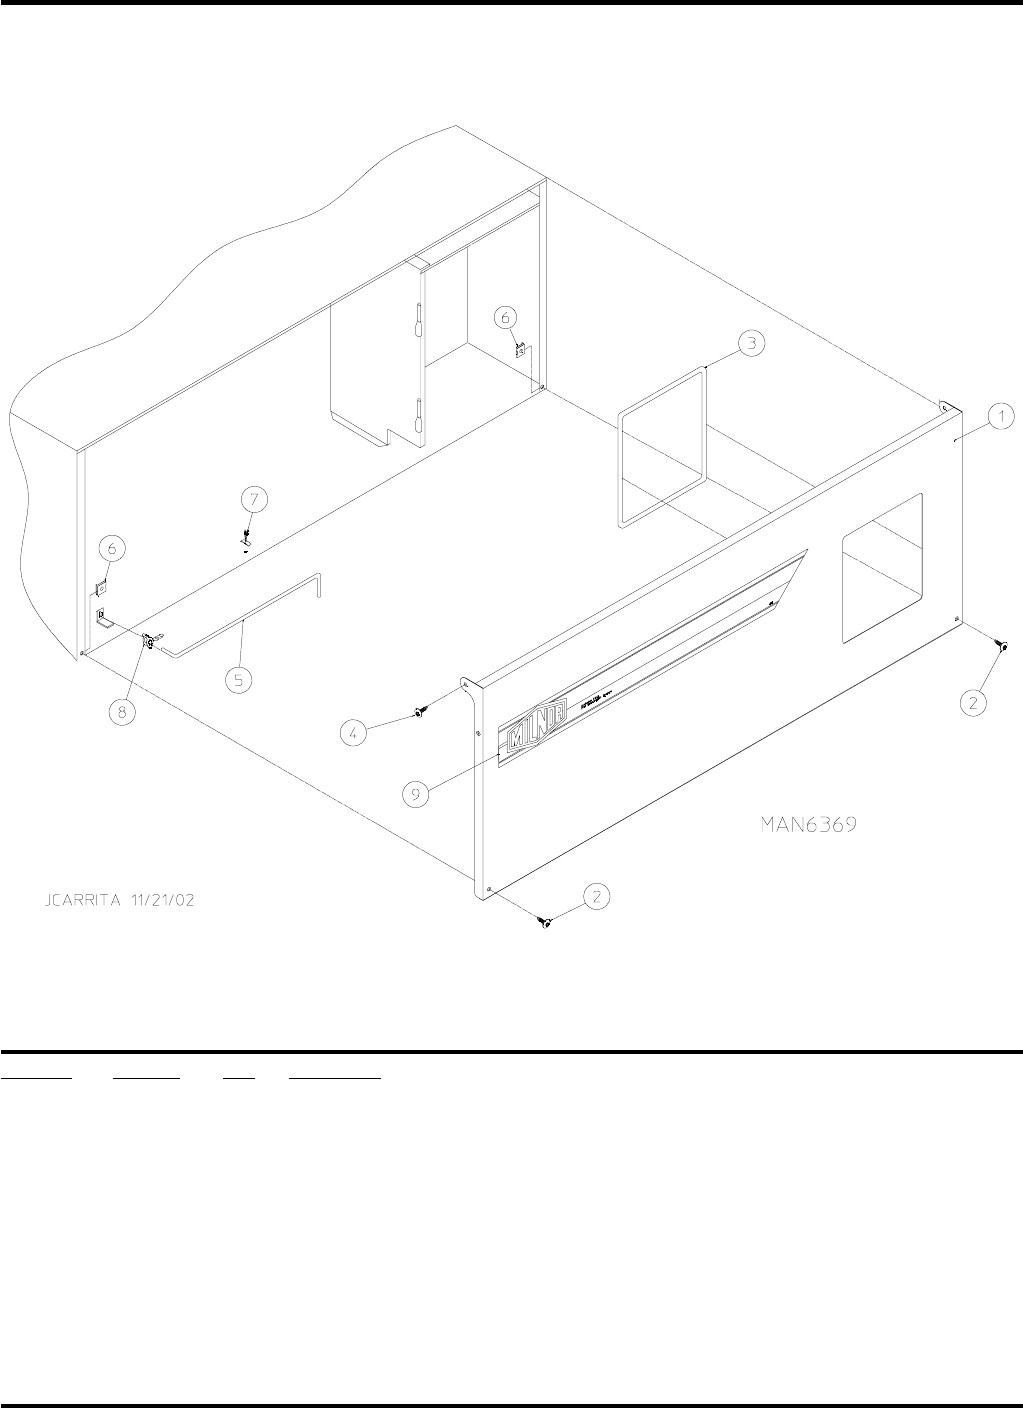 American Dryer Corp Ml 758 Users Manual Ml758 Txt 3pmd Milnor Wiring Diagram 4 Corporation 450566 3